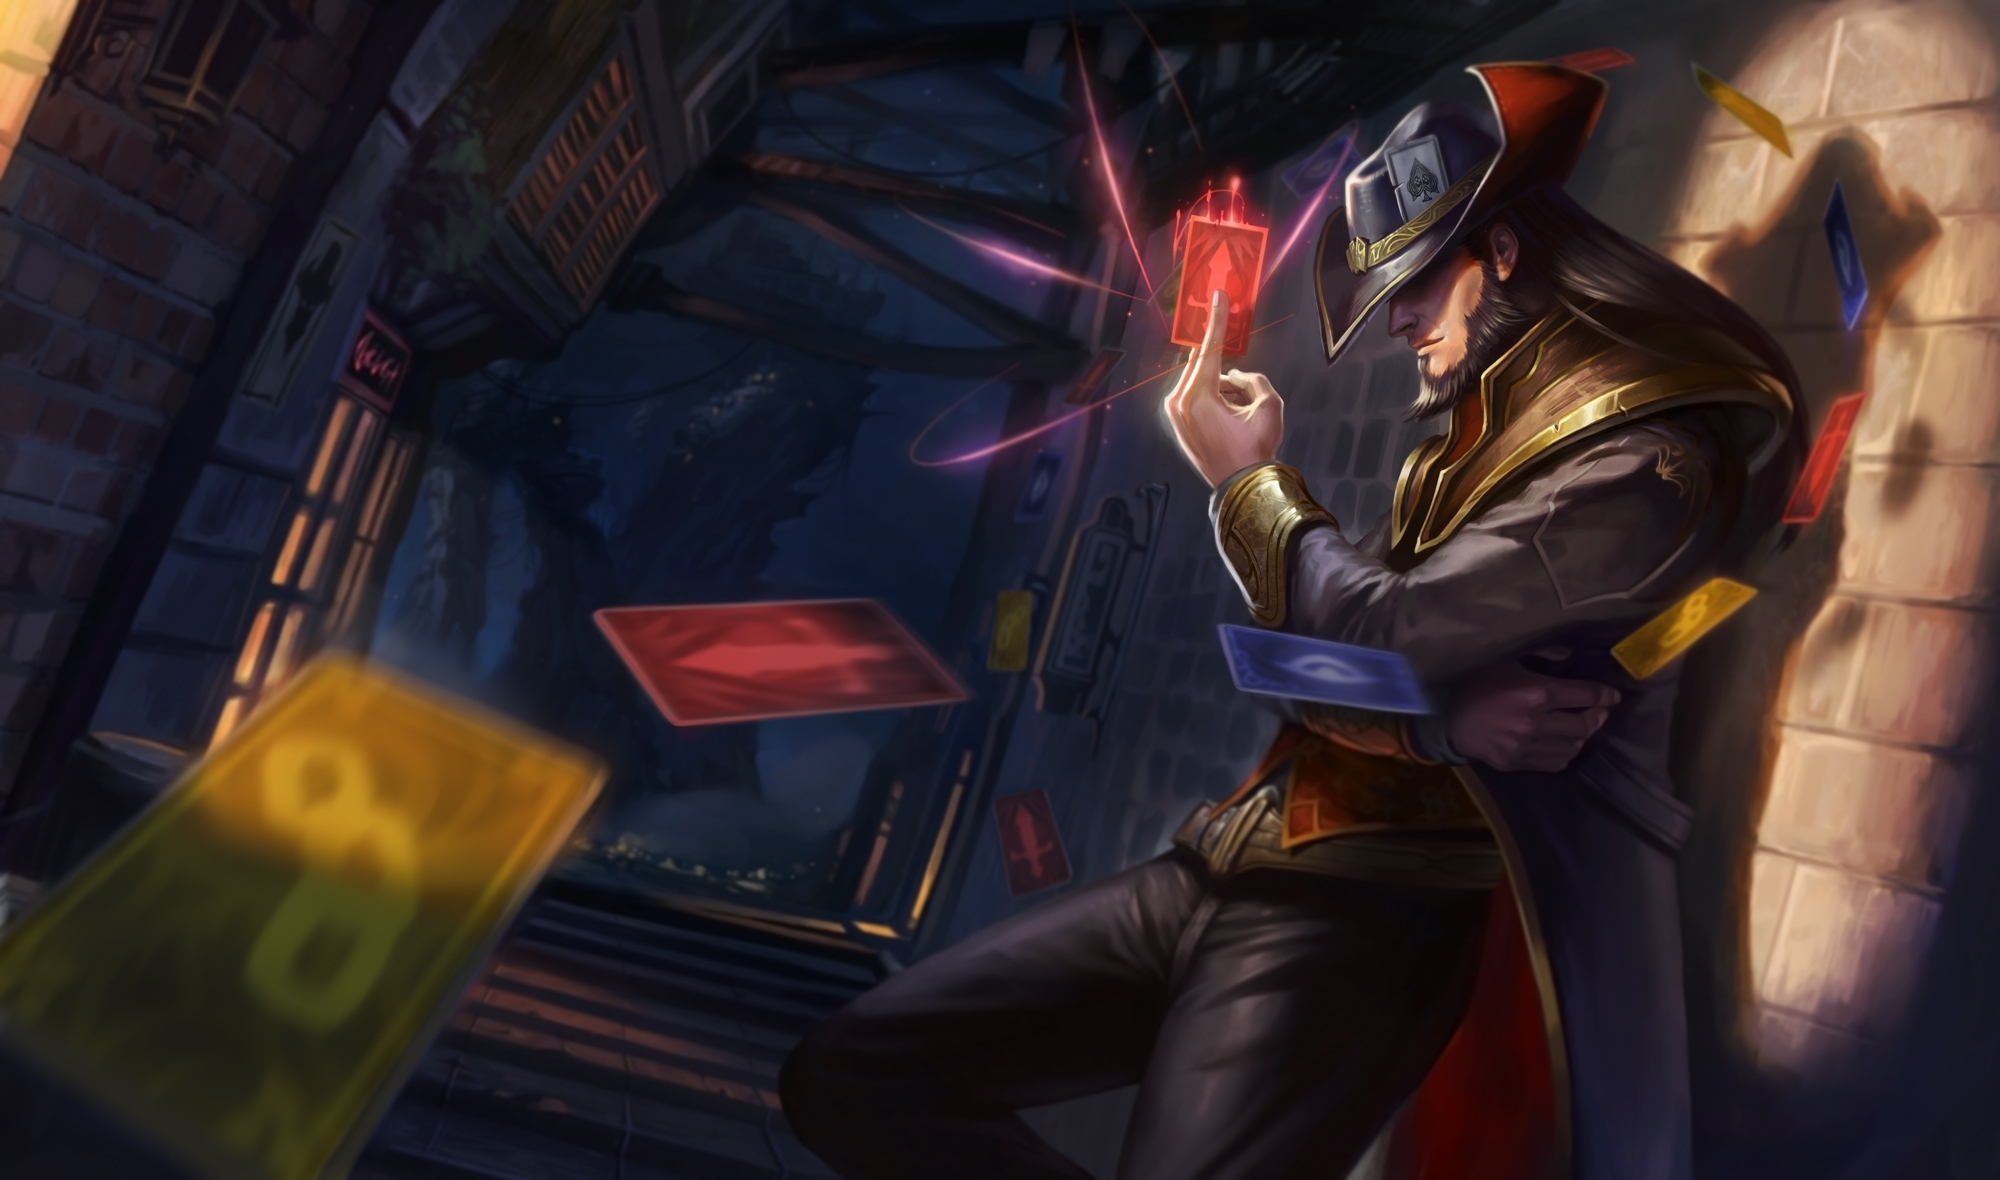 42 twisted fate (league of legends) fonds d'écran hd | arrière-plans